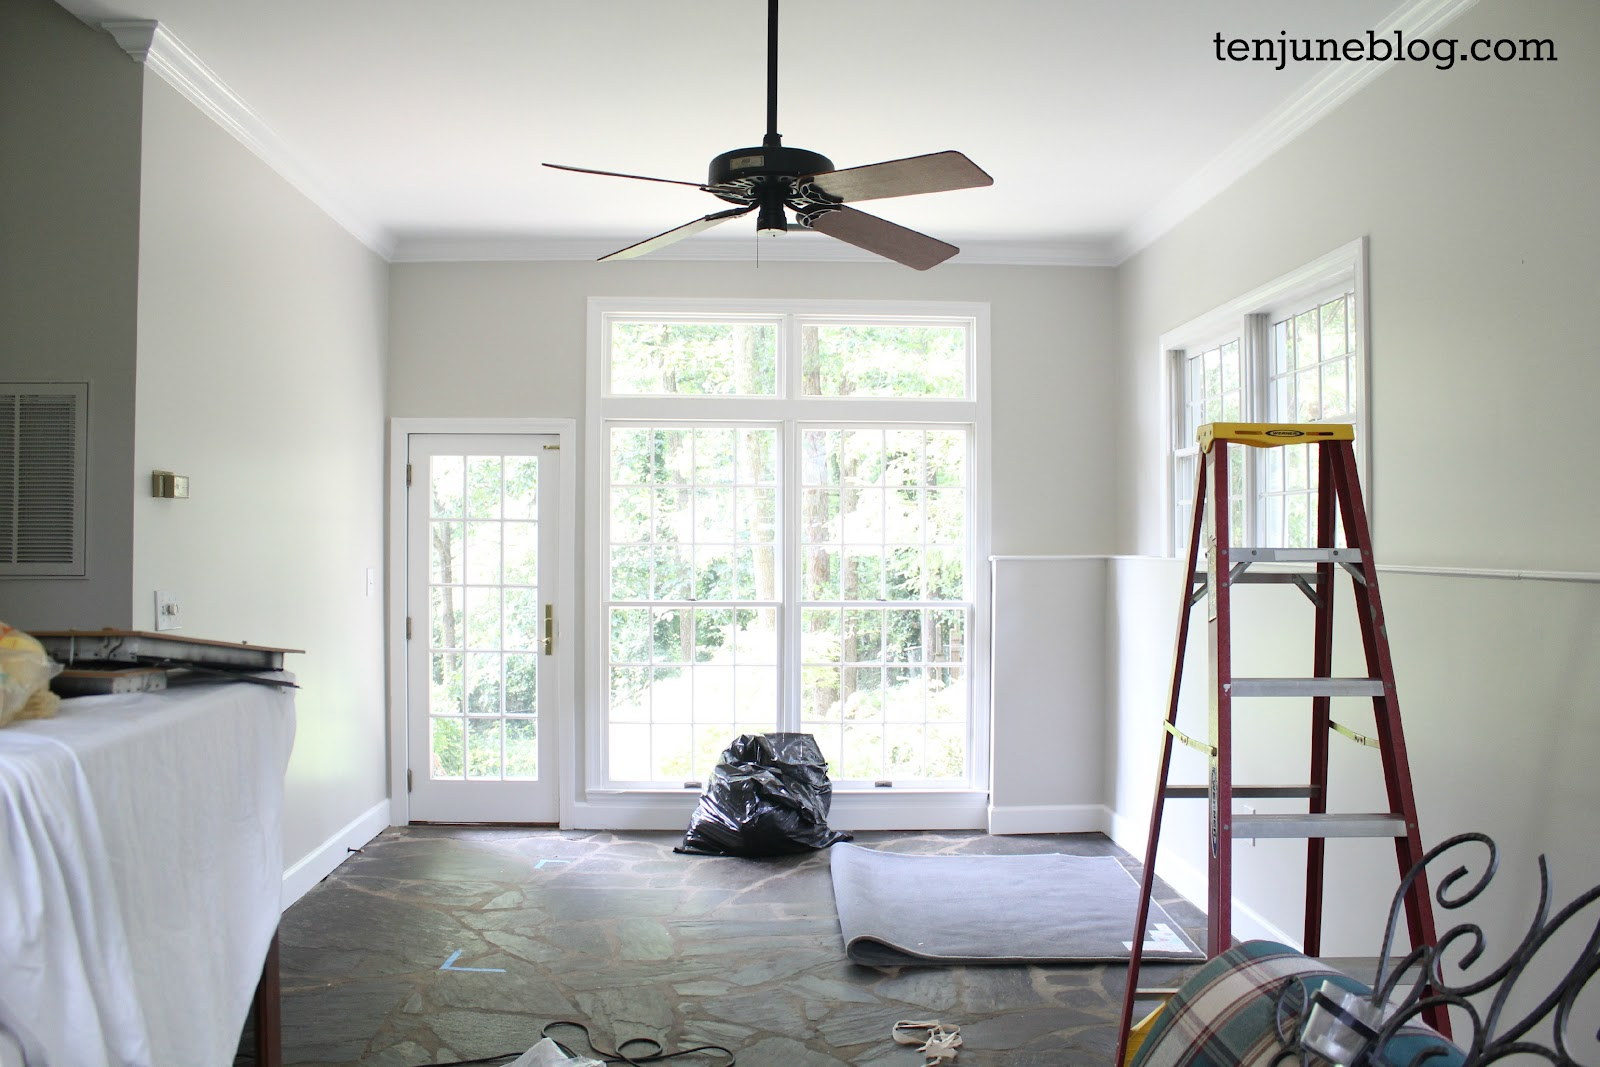 Ten June: Slate Room {Living Room} Makeover: Light, Bright and ...